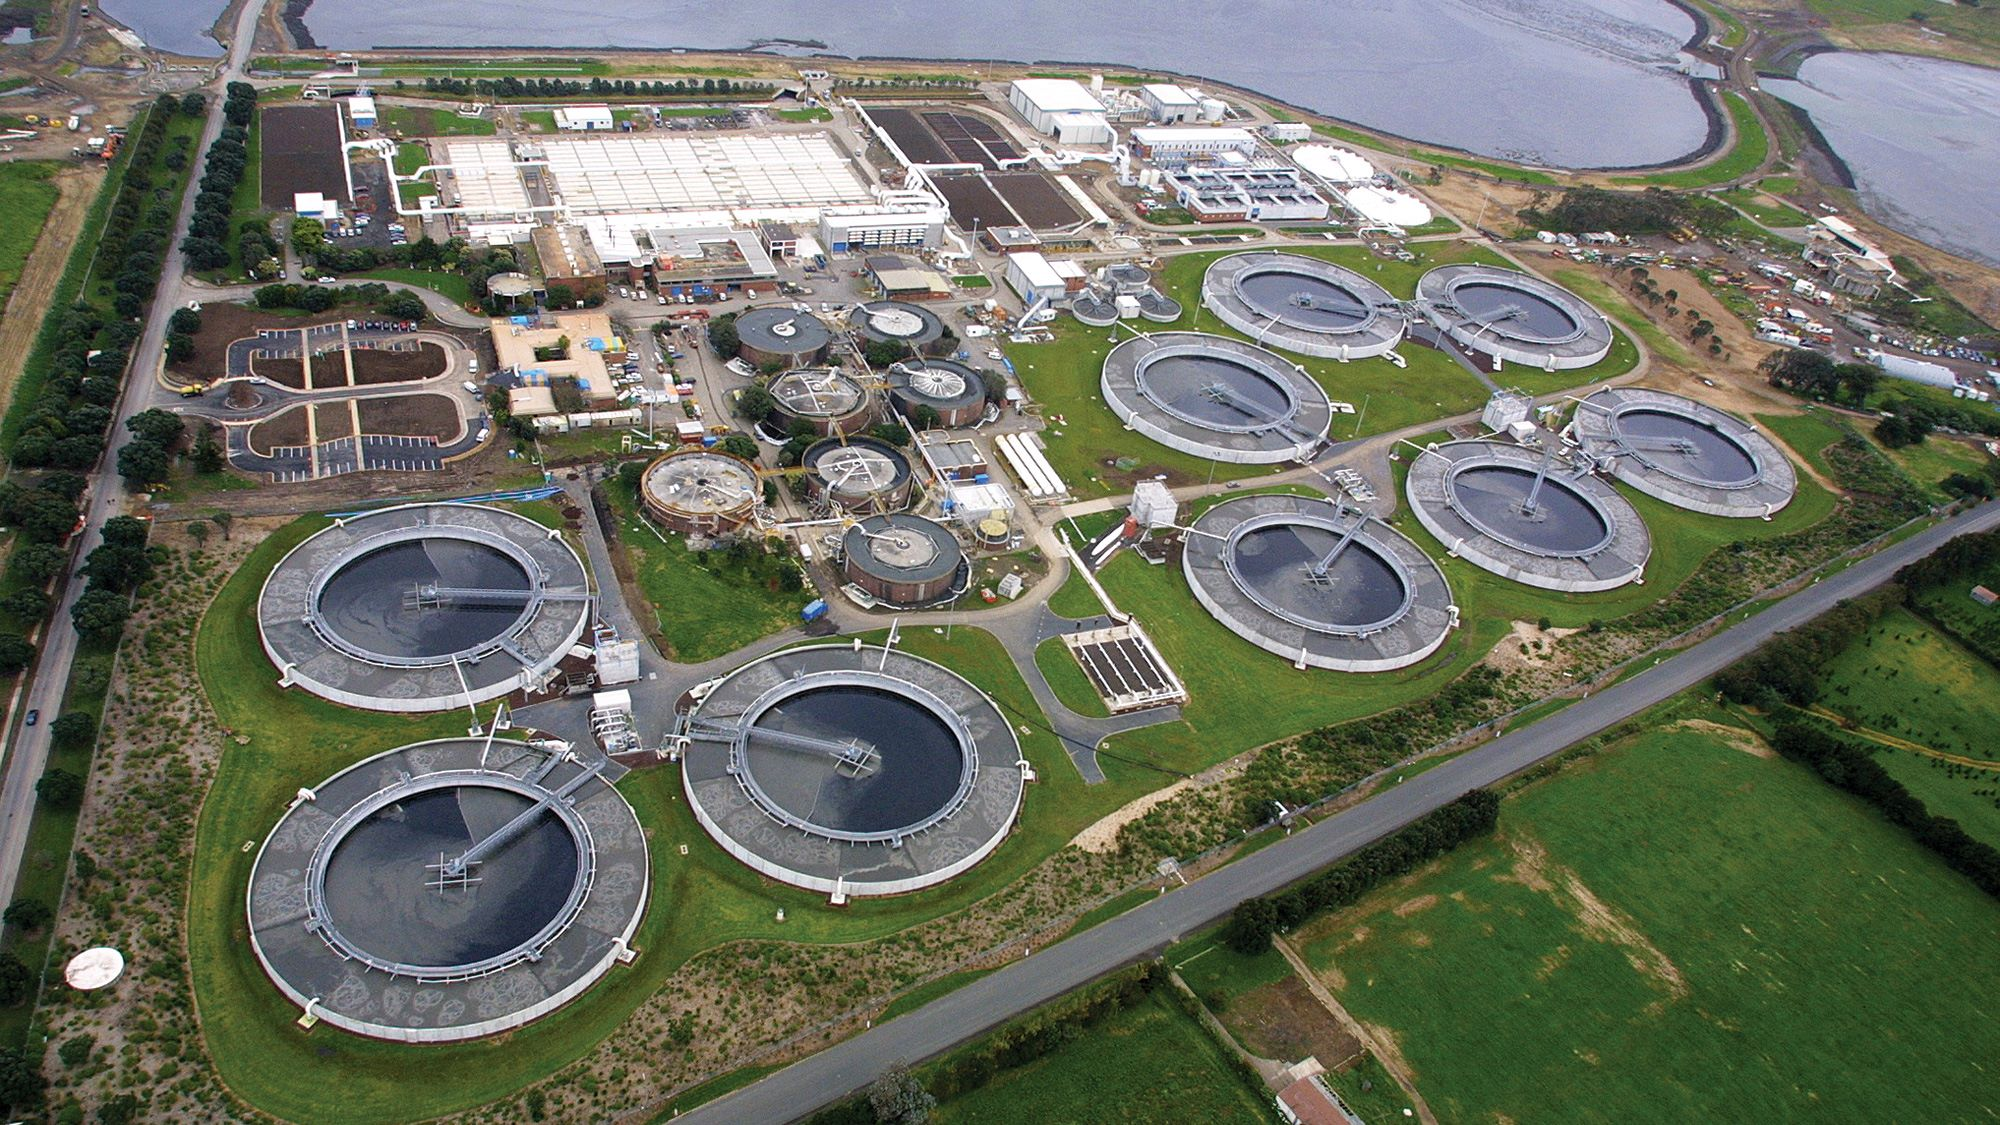 Aerial view of Mangere Wastewater Treatment Plant